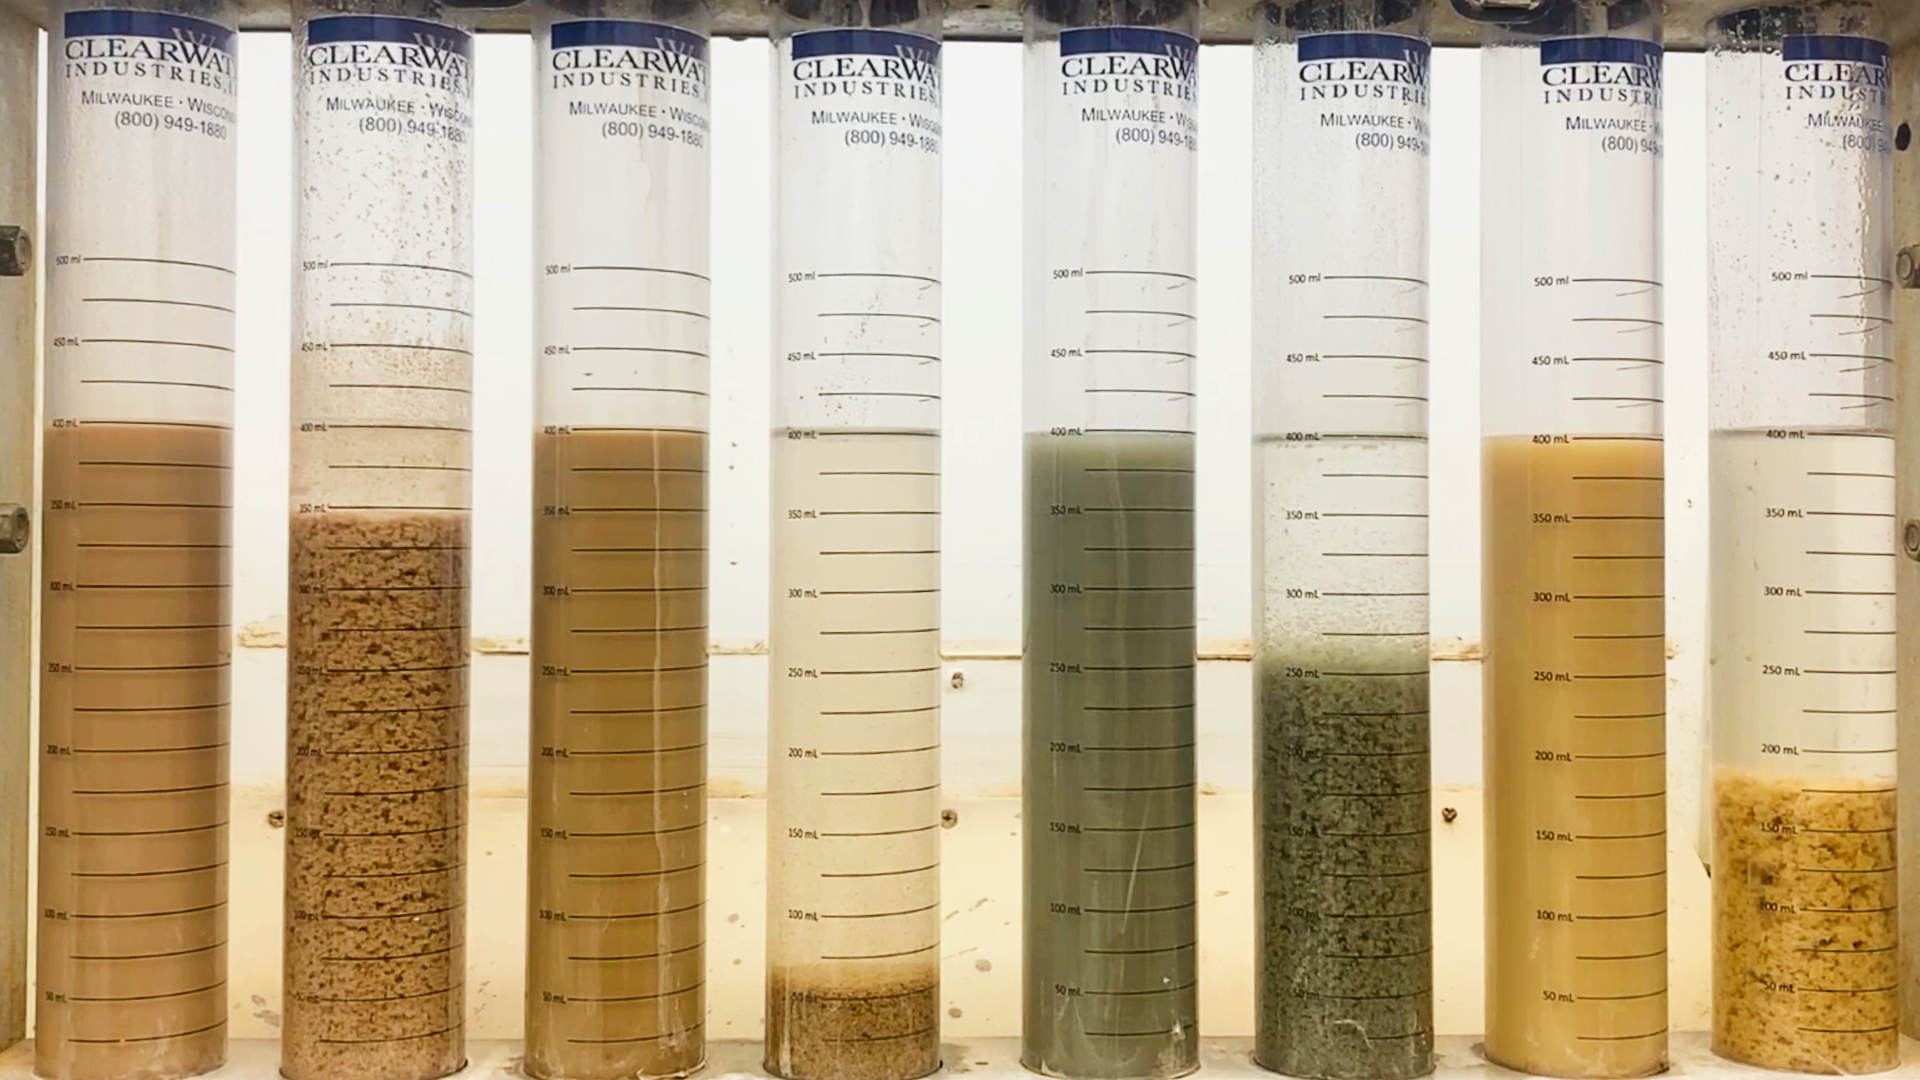 A polymer jar test picture with many different slurries being tested to show how different slurries react to polymer dosing.